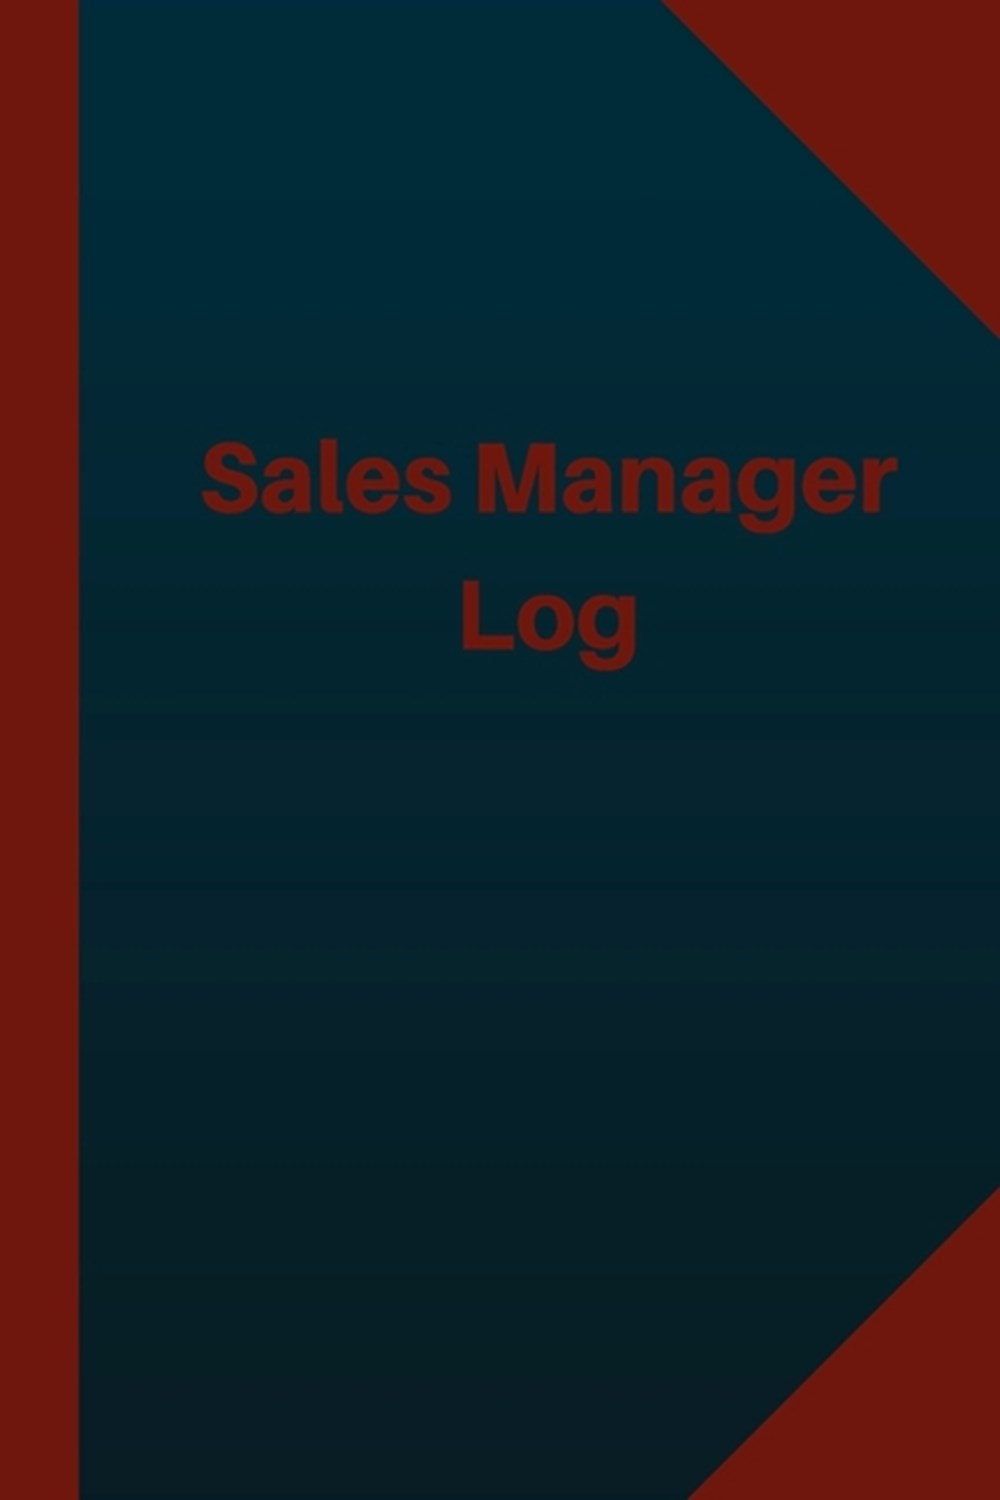 Sales Manager Log (Logbook, Journal - 124 pages 6x9 inches) Sales Manager Logbook (Blue Cover, Mediu